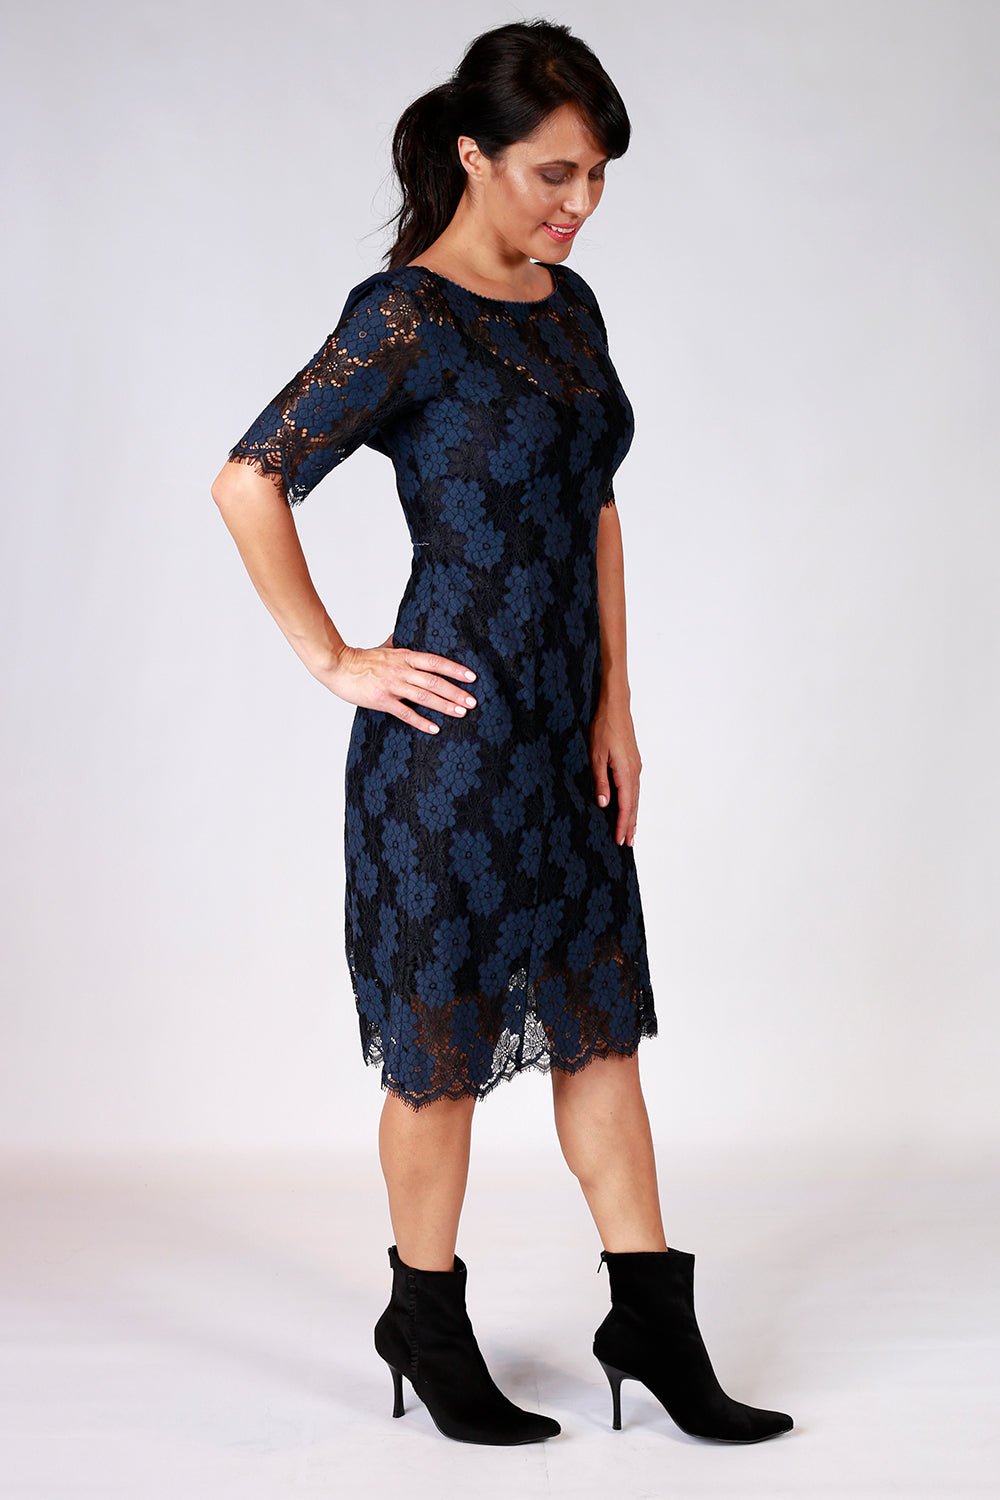 Aleena Lulu Lace Dress | Annah Stretton AW20 | Knee Length Lace Dress | Shot on Model | Navy Lace Dress | Navy Dress | Lace Dress | Cowl Back | Occasion Dress | Event wear | NZ Designer Dress